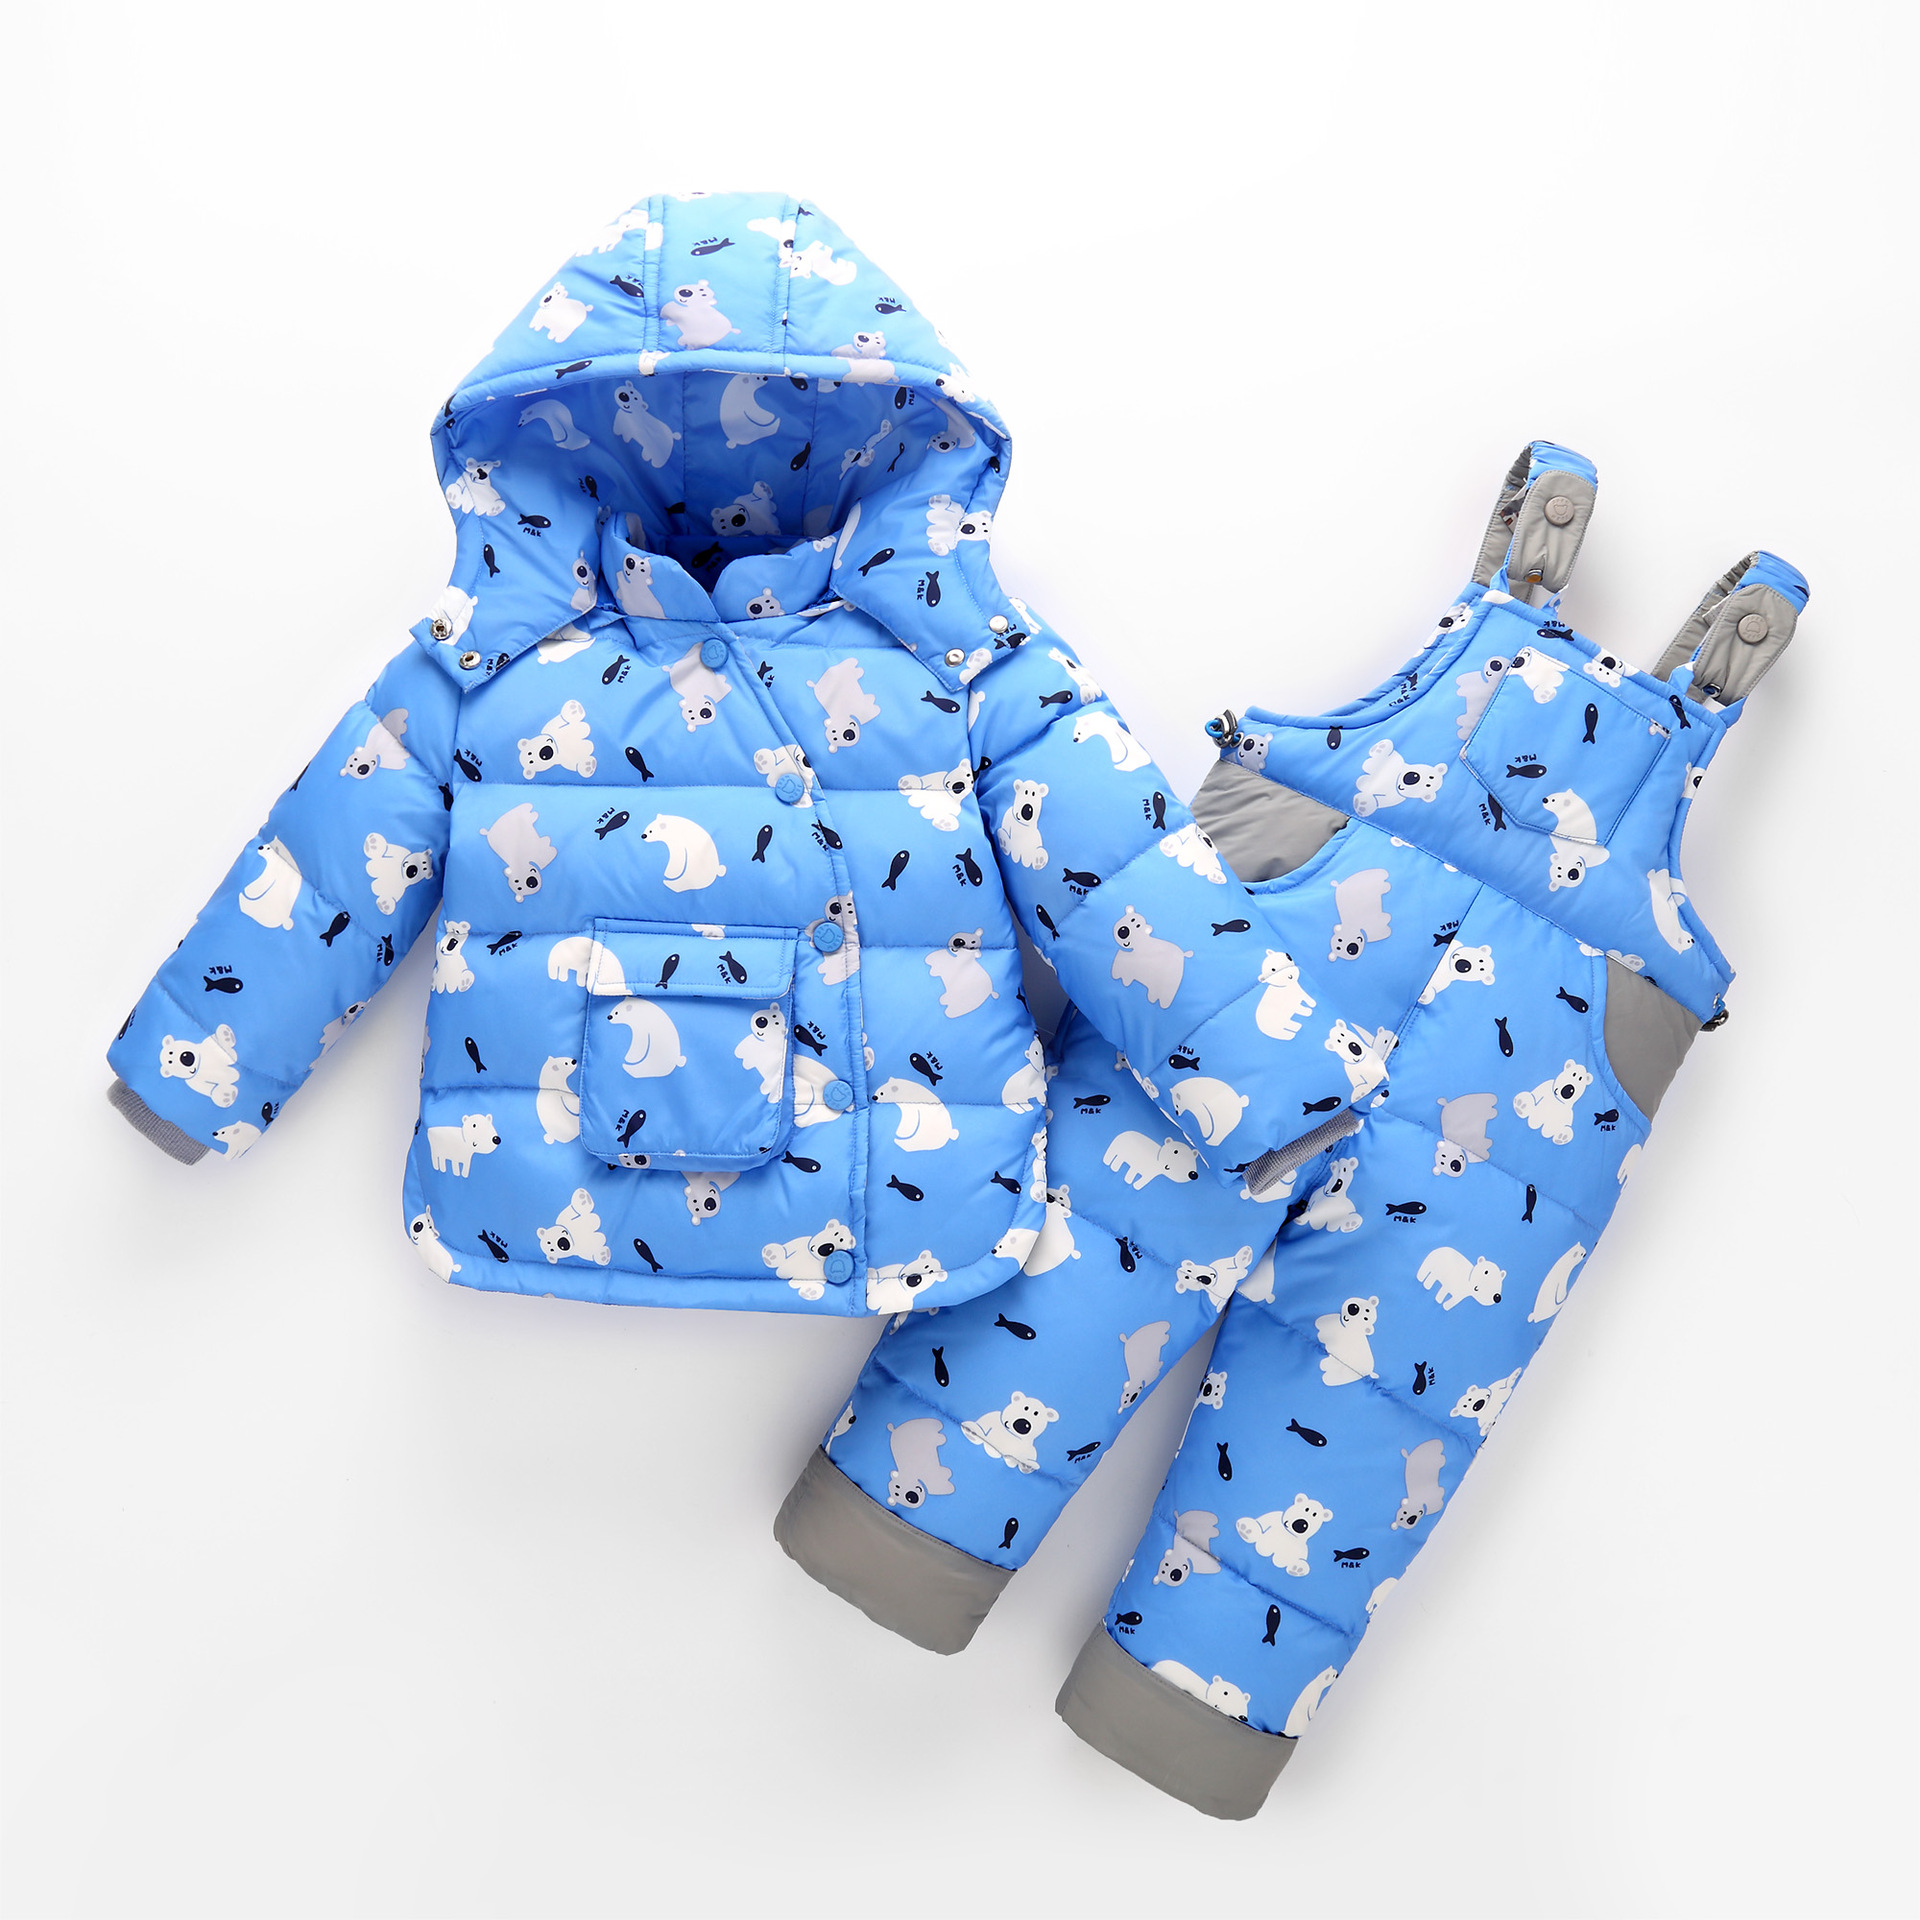 Winter Suits for Boys Girls 2018 Boys Ski Suit Children Clothing Set Baby Duck Down Jacket Coat + Overalls Warm Kids Snowsuit baby winter warm ski suits thick down